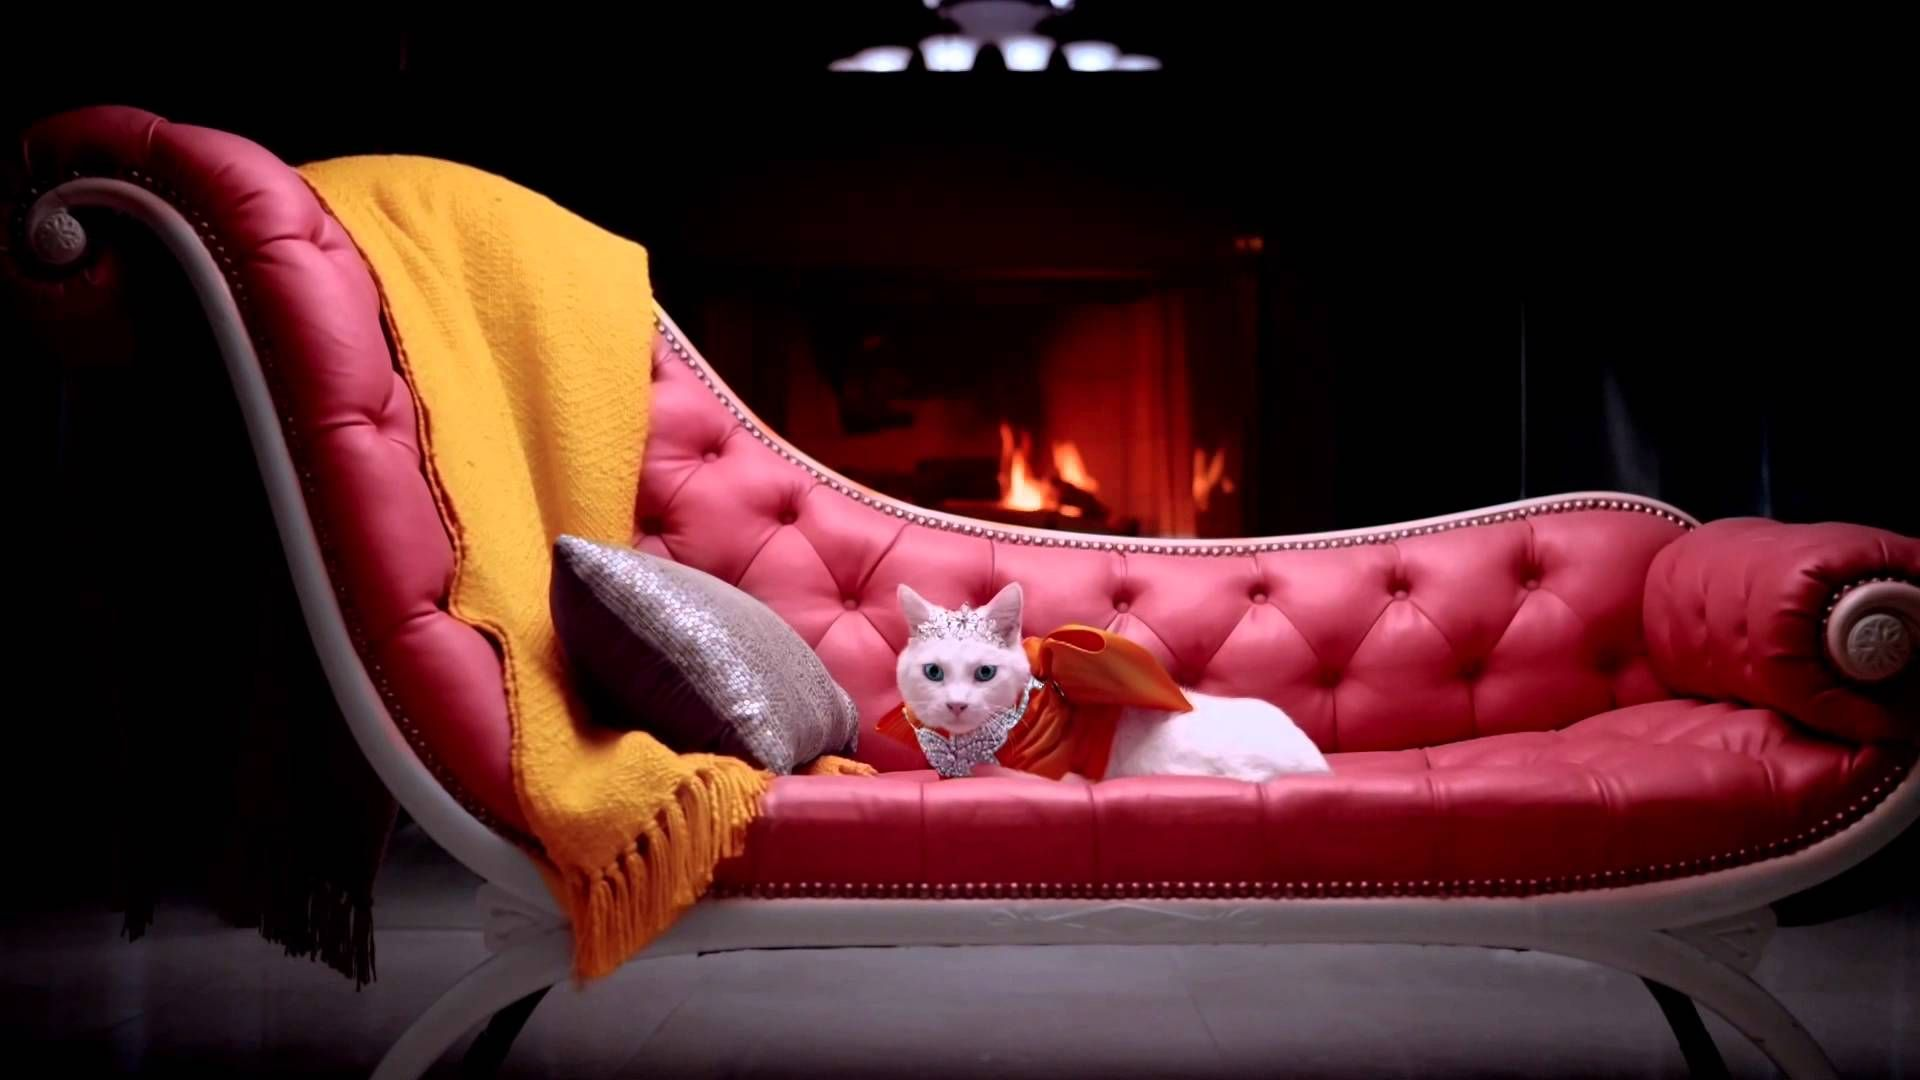 Marmalade The Spayed Cat I think this commercial is so